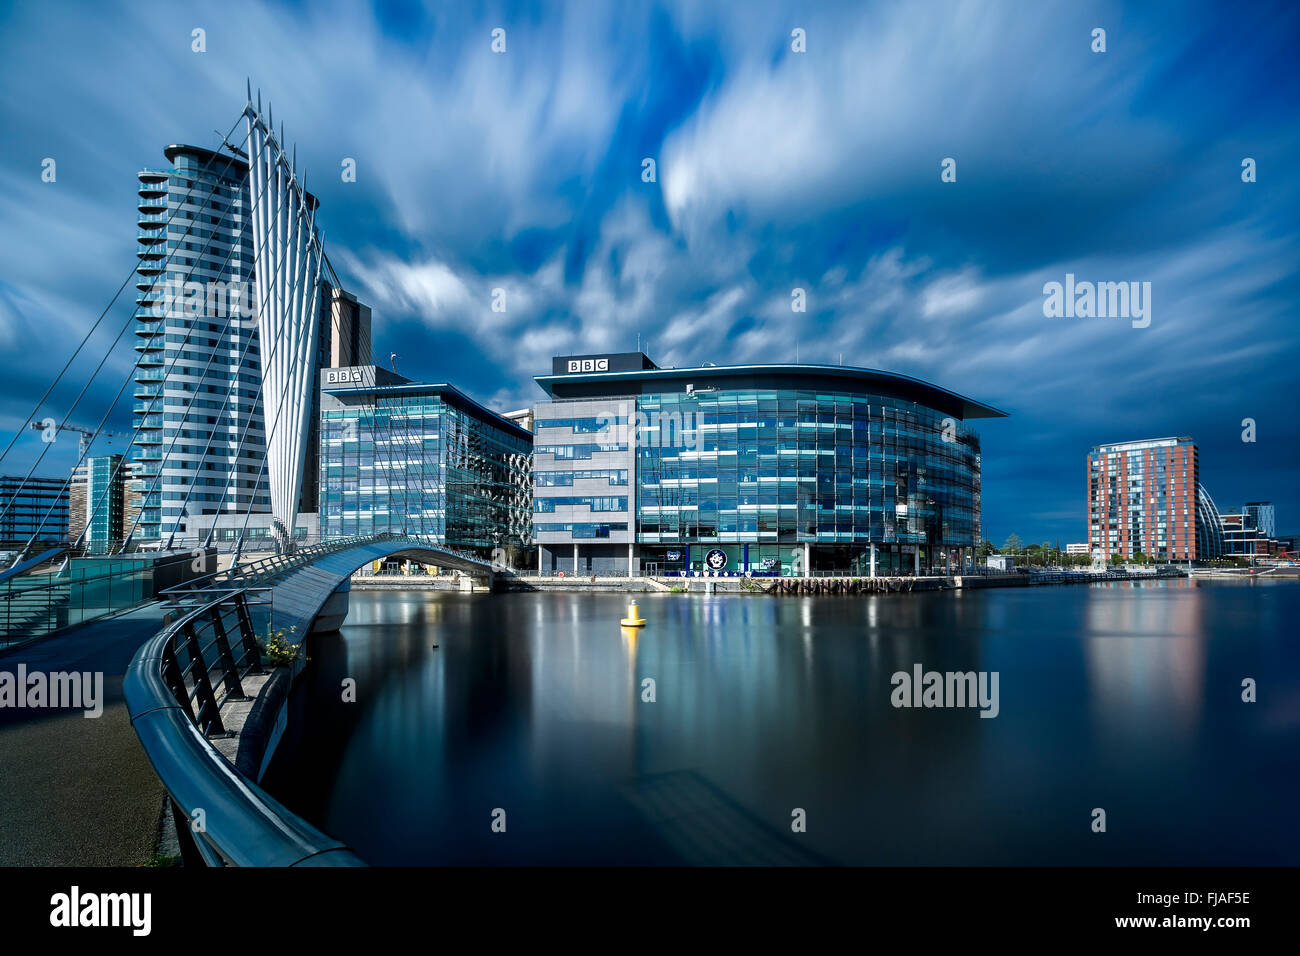 The BBC Centre and Media City at Salford Quays. - Stock Image